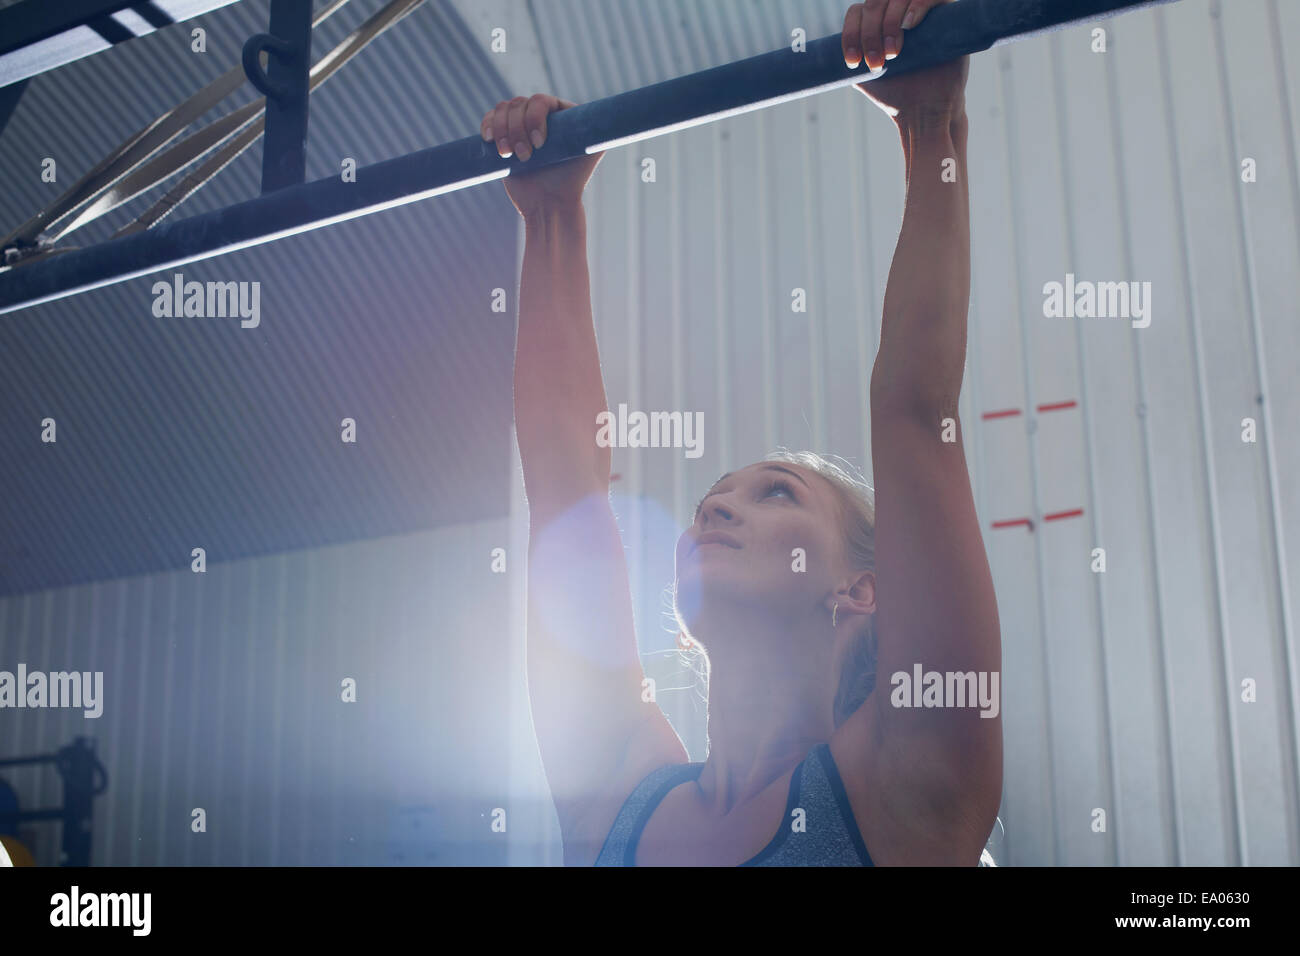 Woman doing pull ups in gym - Stock Image